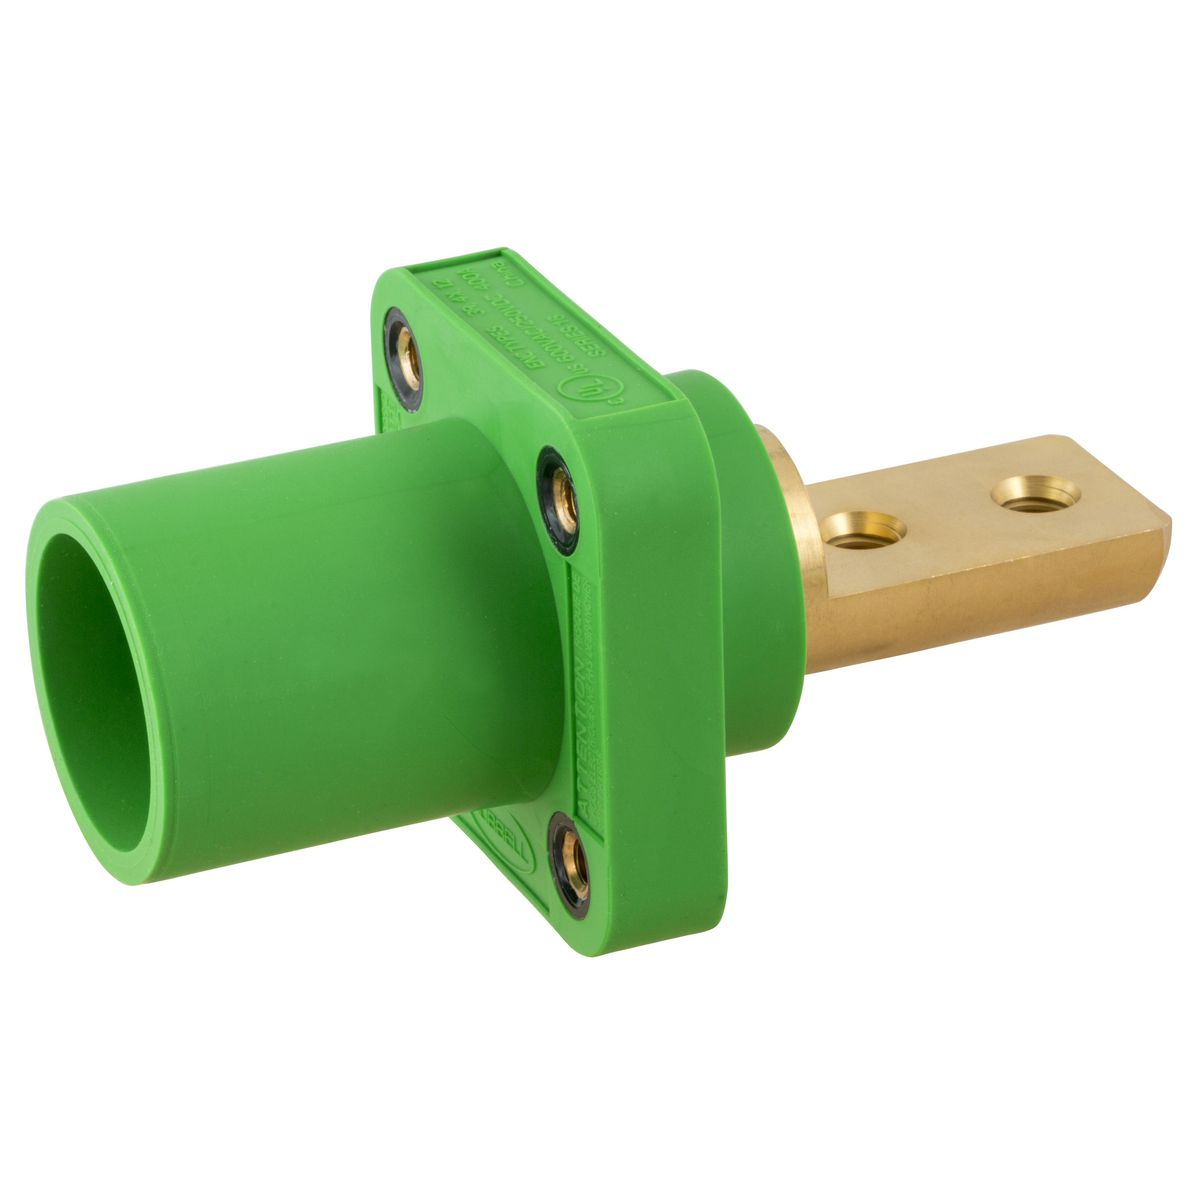 Hubbell HBLMRB2GN Single Pole Receptacle